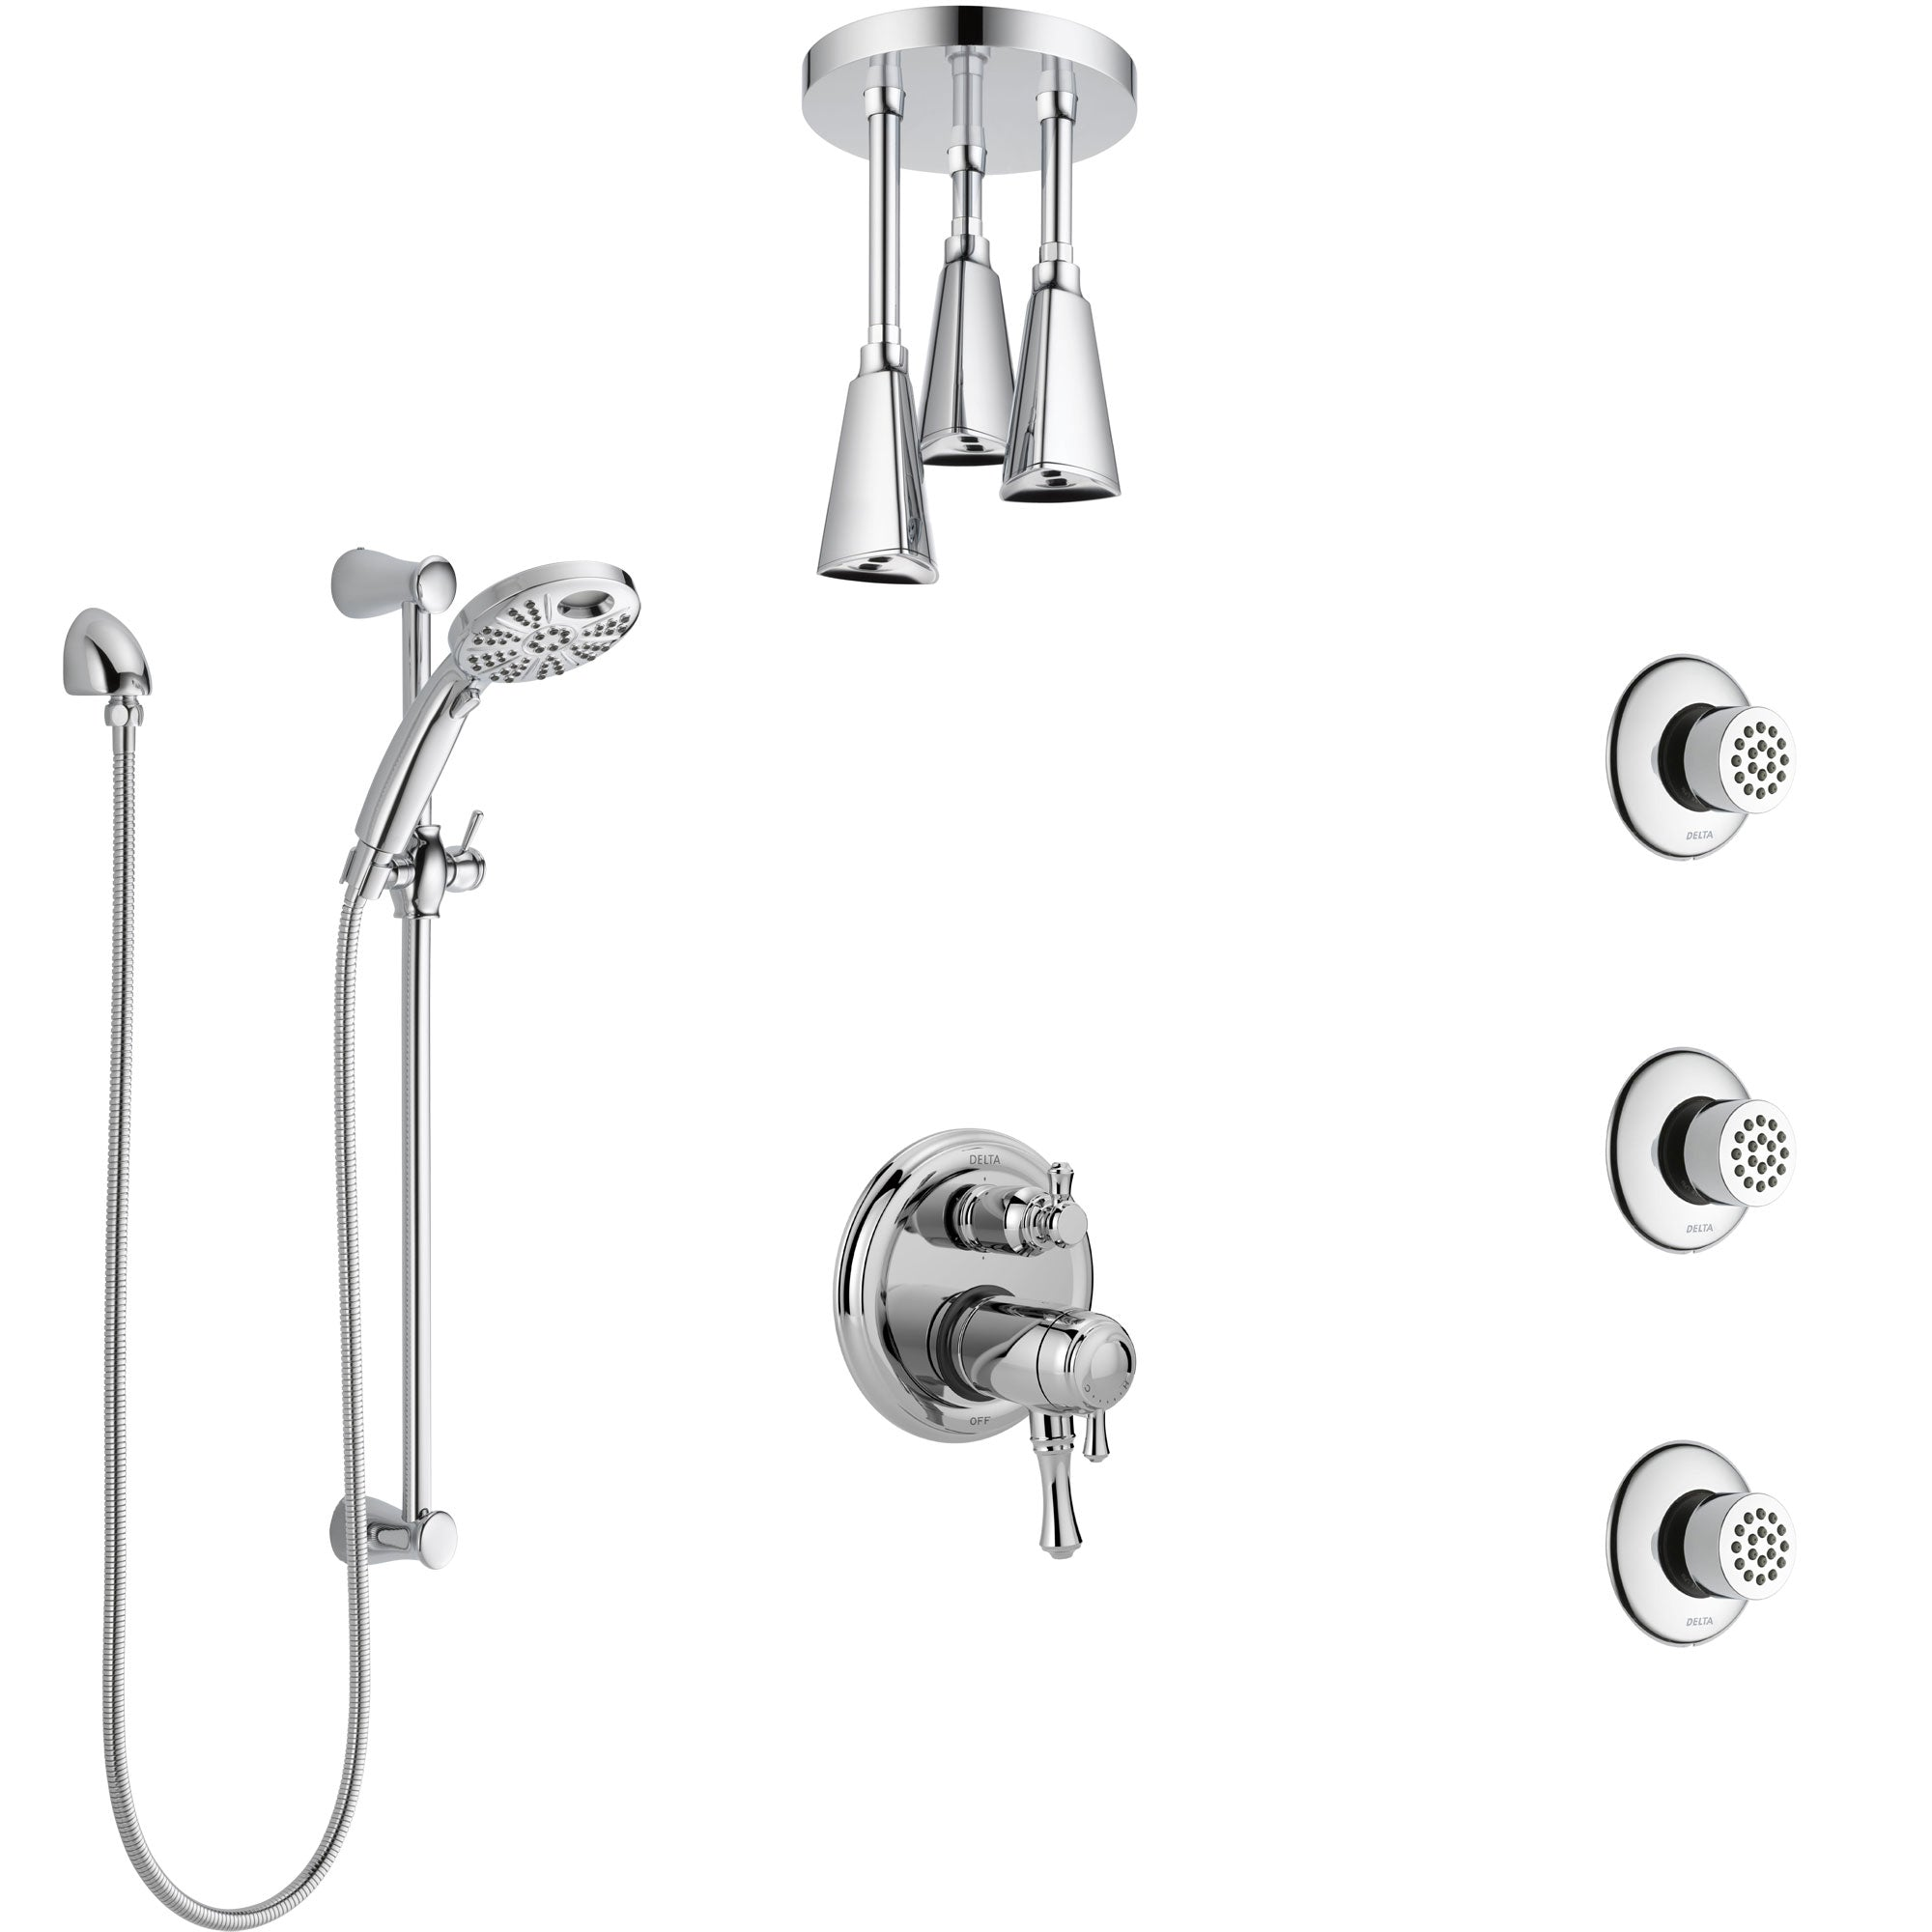 Delta Cassidy Chrome Dual Thermostatic Control Shower System, Integrated Diverter, Ceiling Showerhead, 3 Body Sprays, and Temp2O Hand Shower SS27T9978